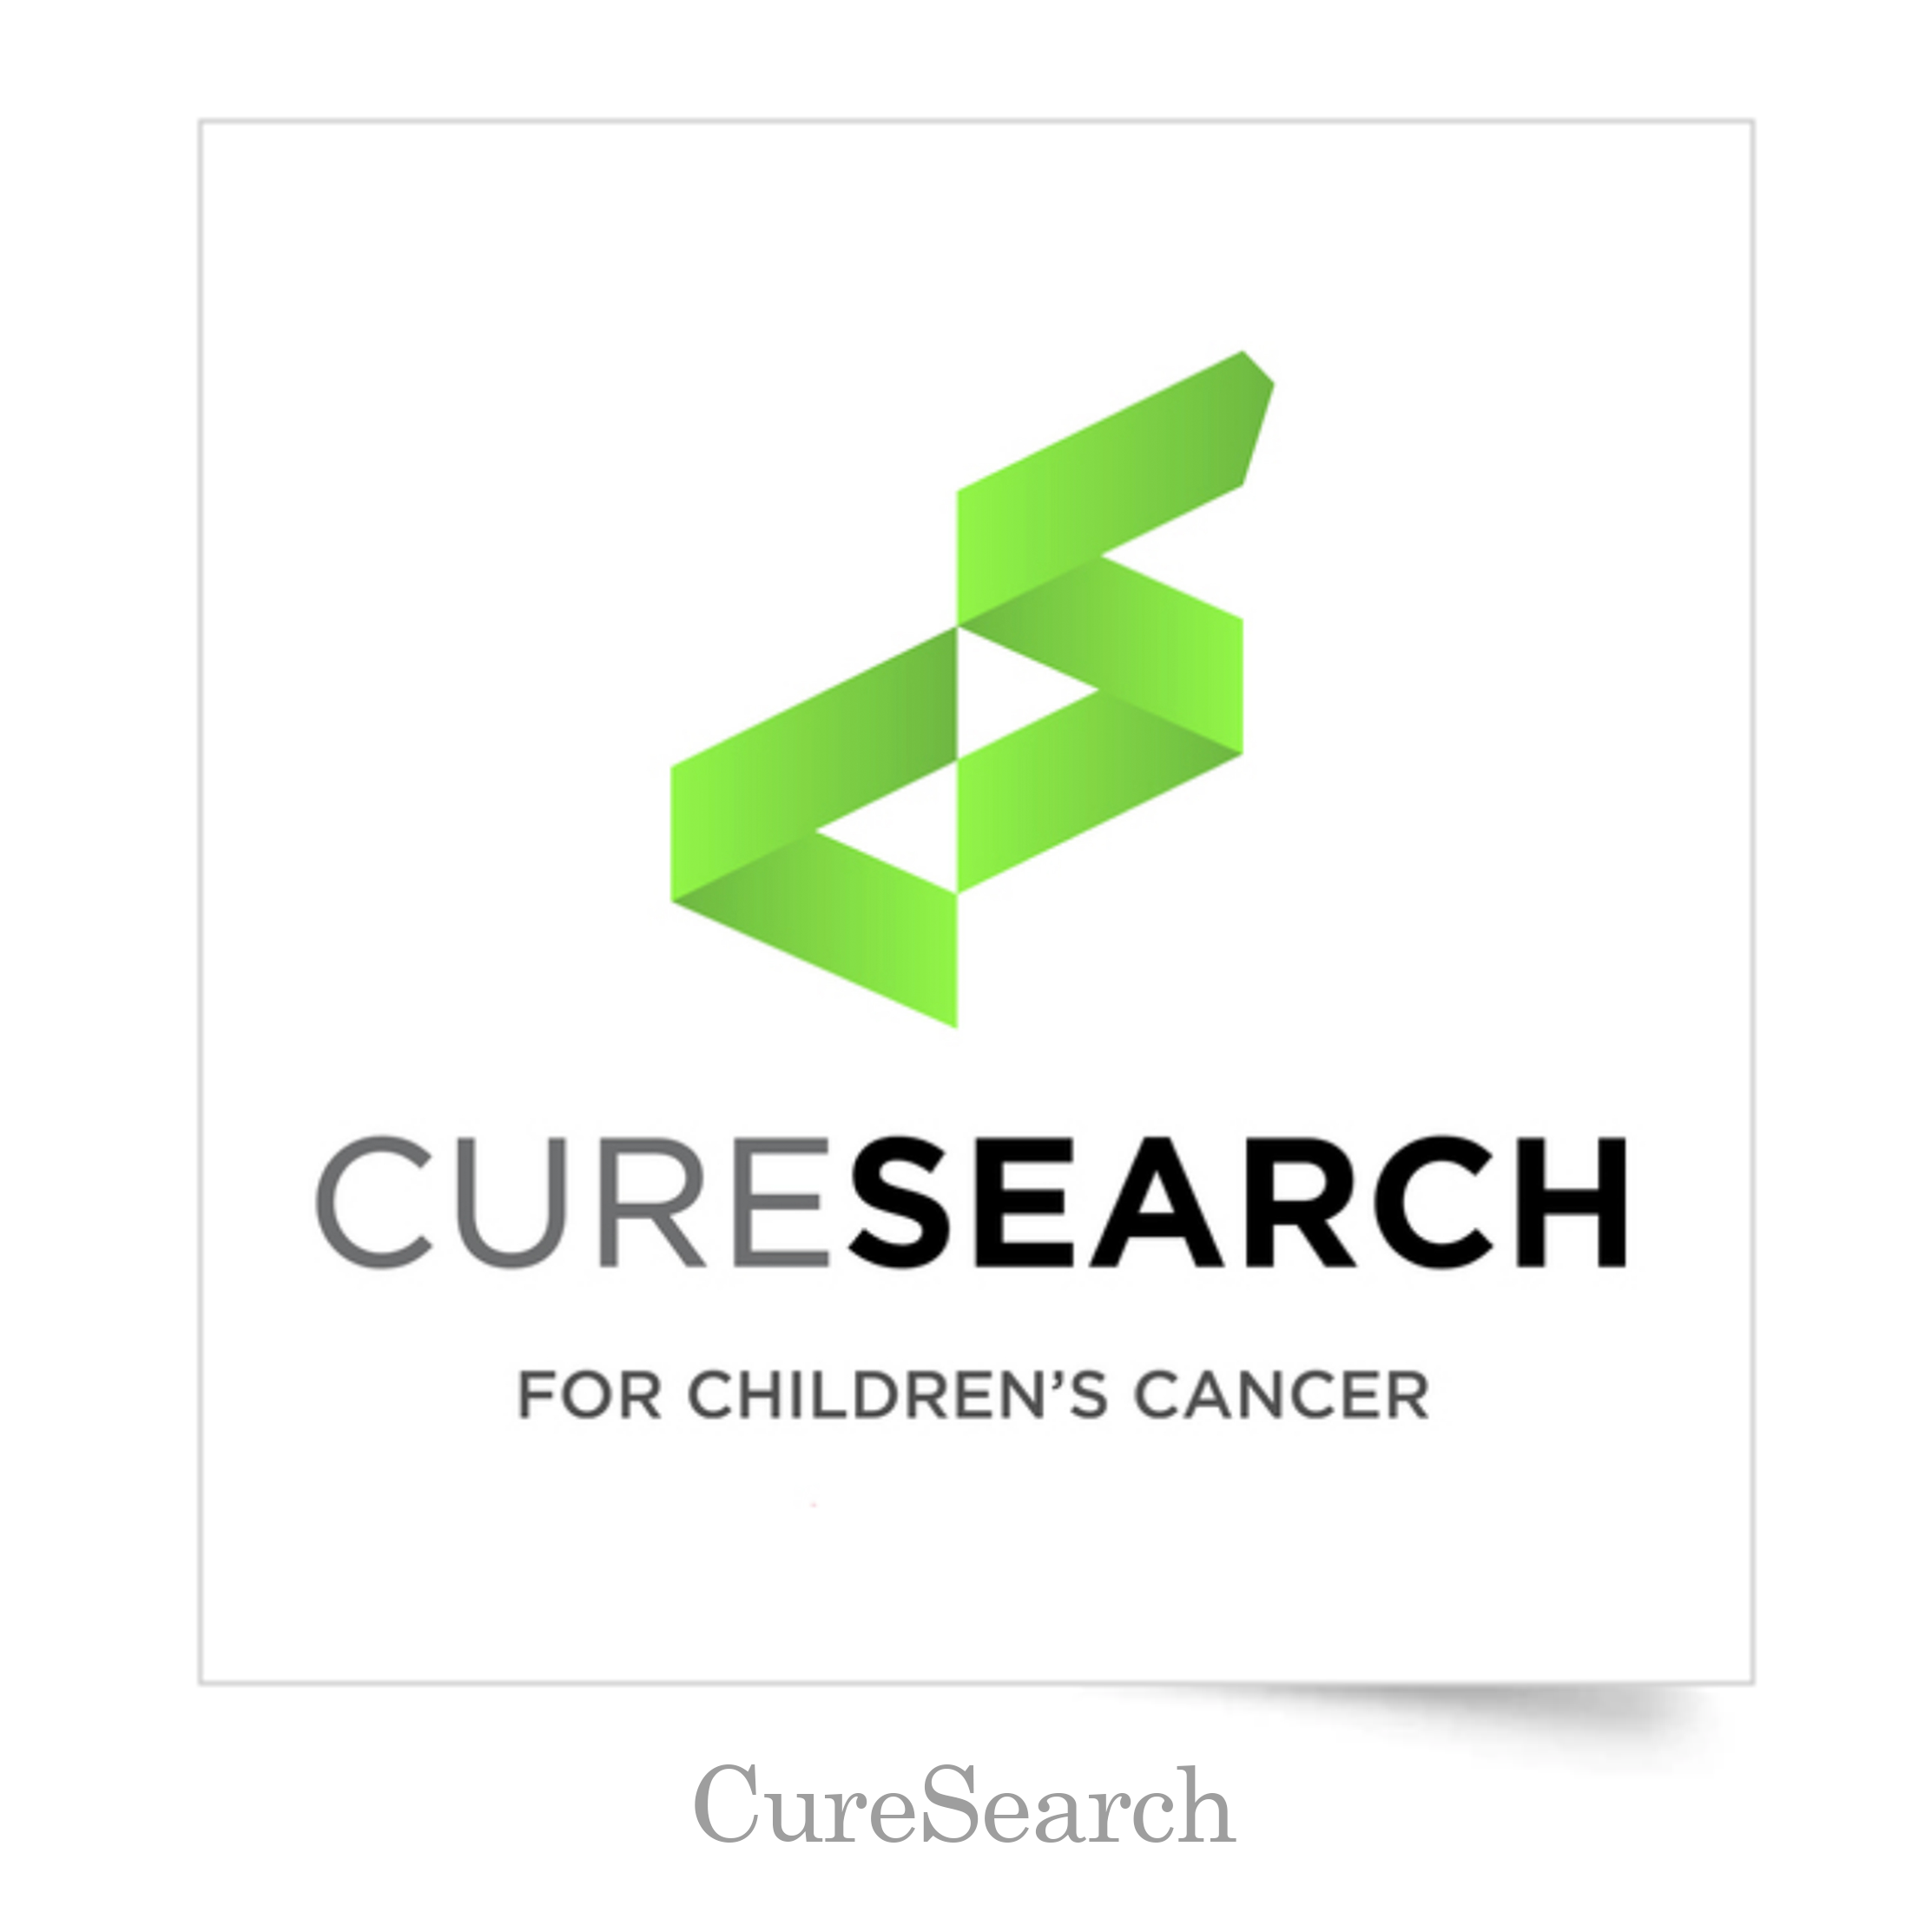 cure search